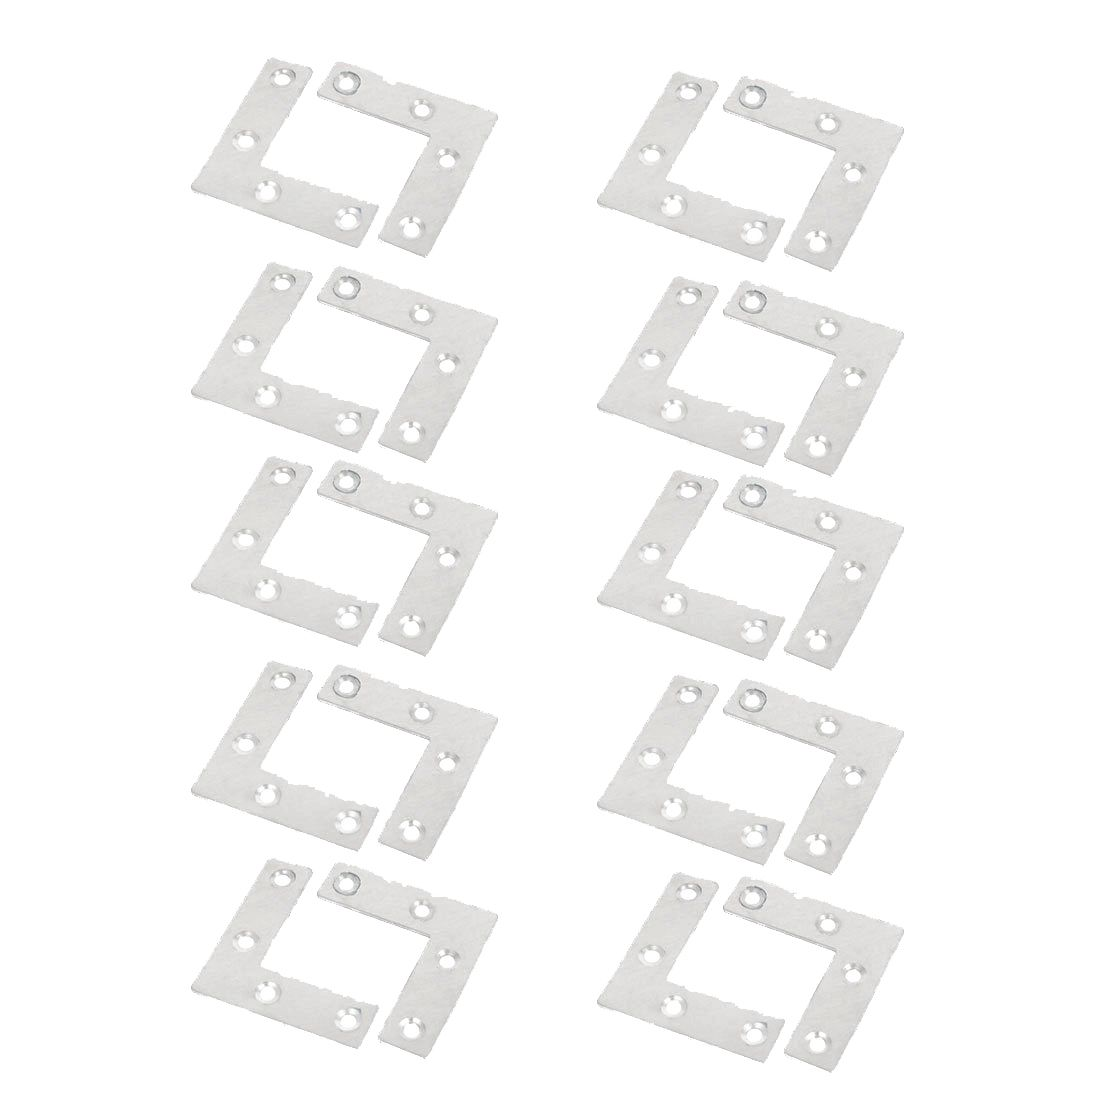 20x Stainless Steel Flat Corner Angle Bracket Plates Repair Brace Silver 10pcs lot stainless steel flat corner brace fixed angle plate connector repair bracket 38mm 15 6mm thickness 1 73mm k160